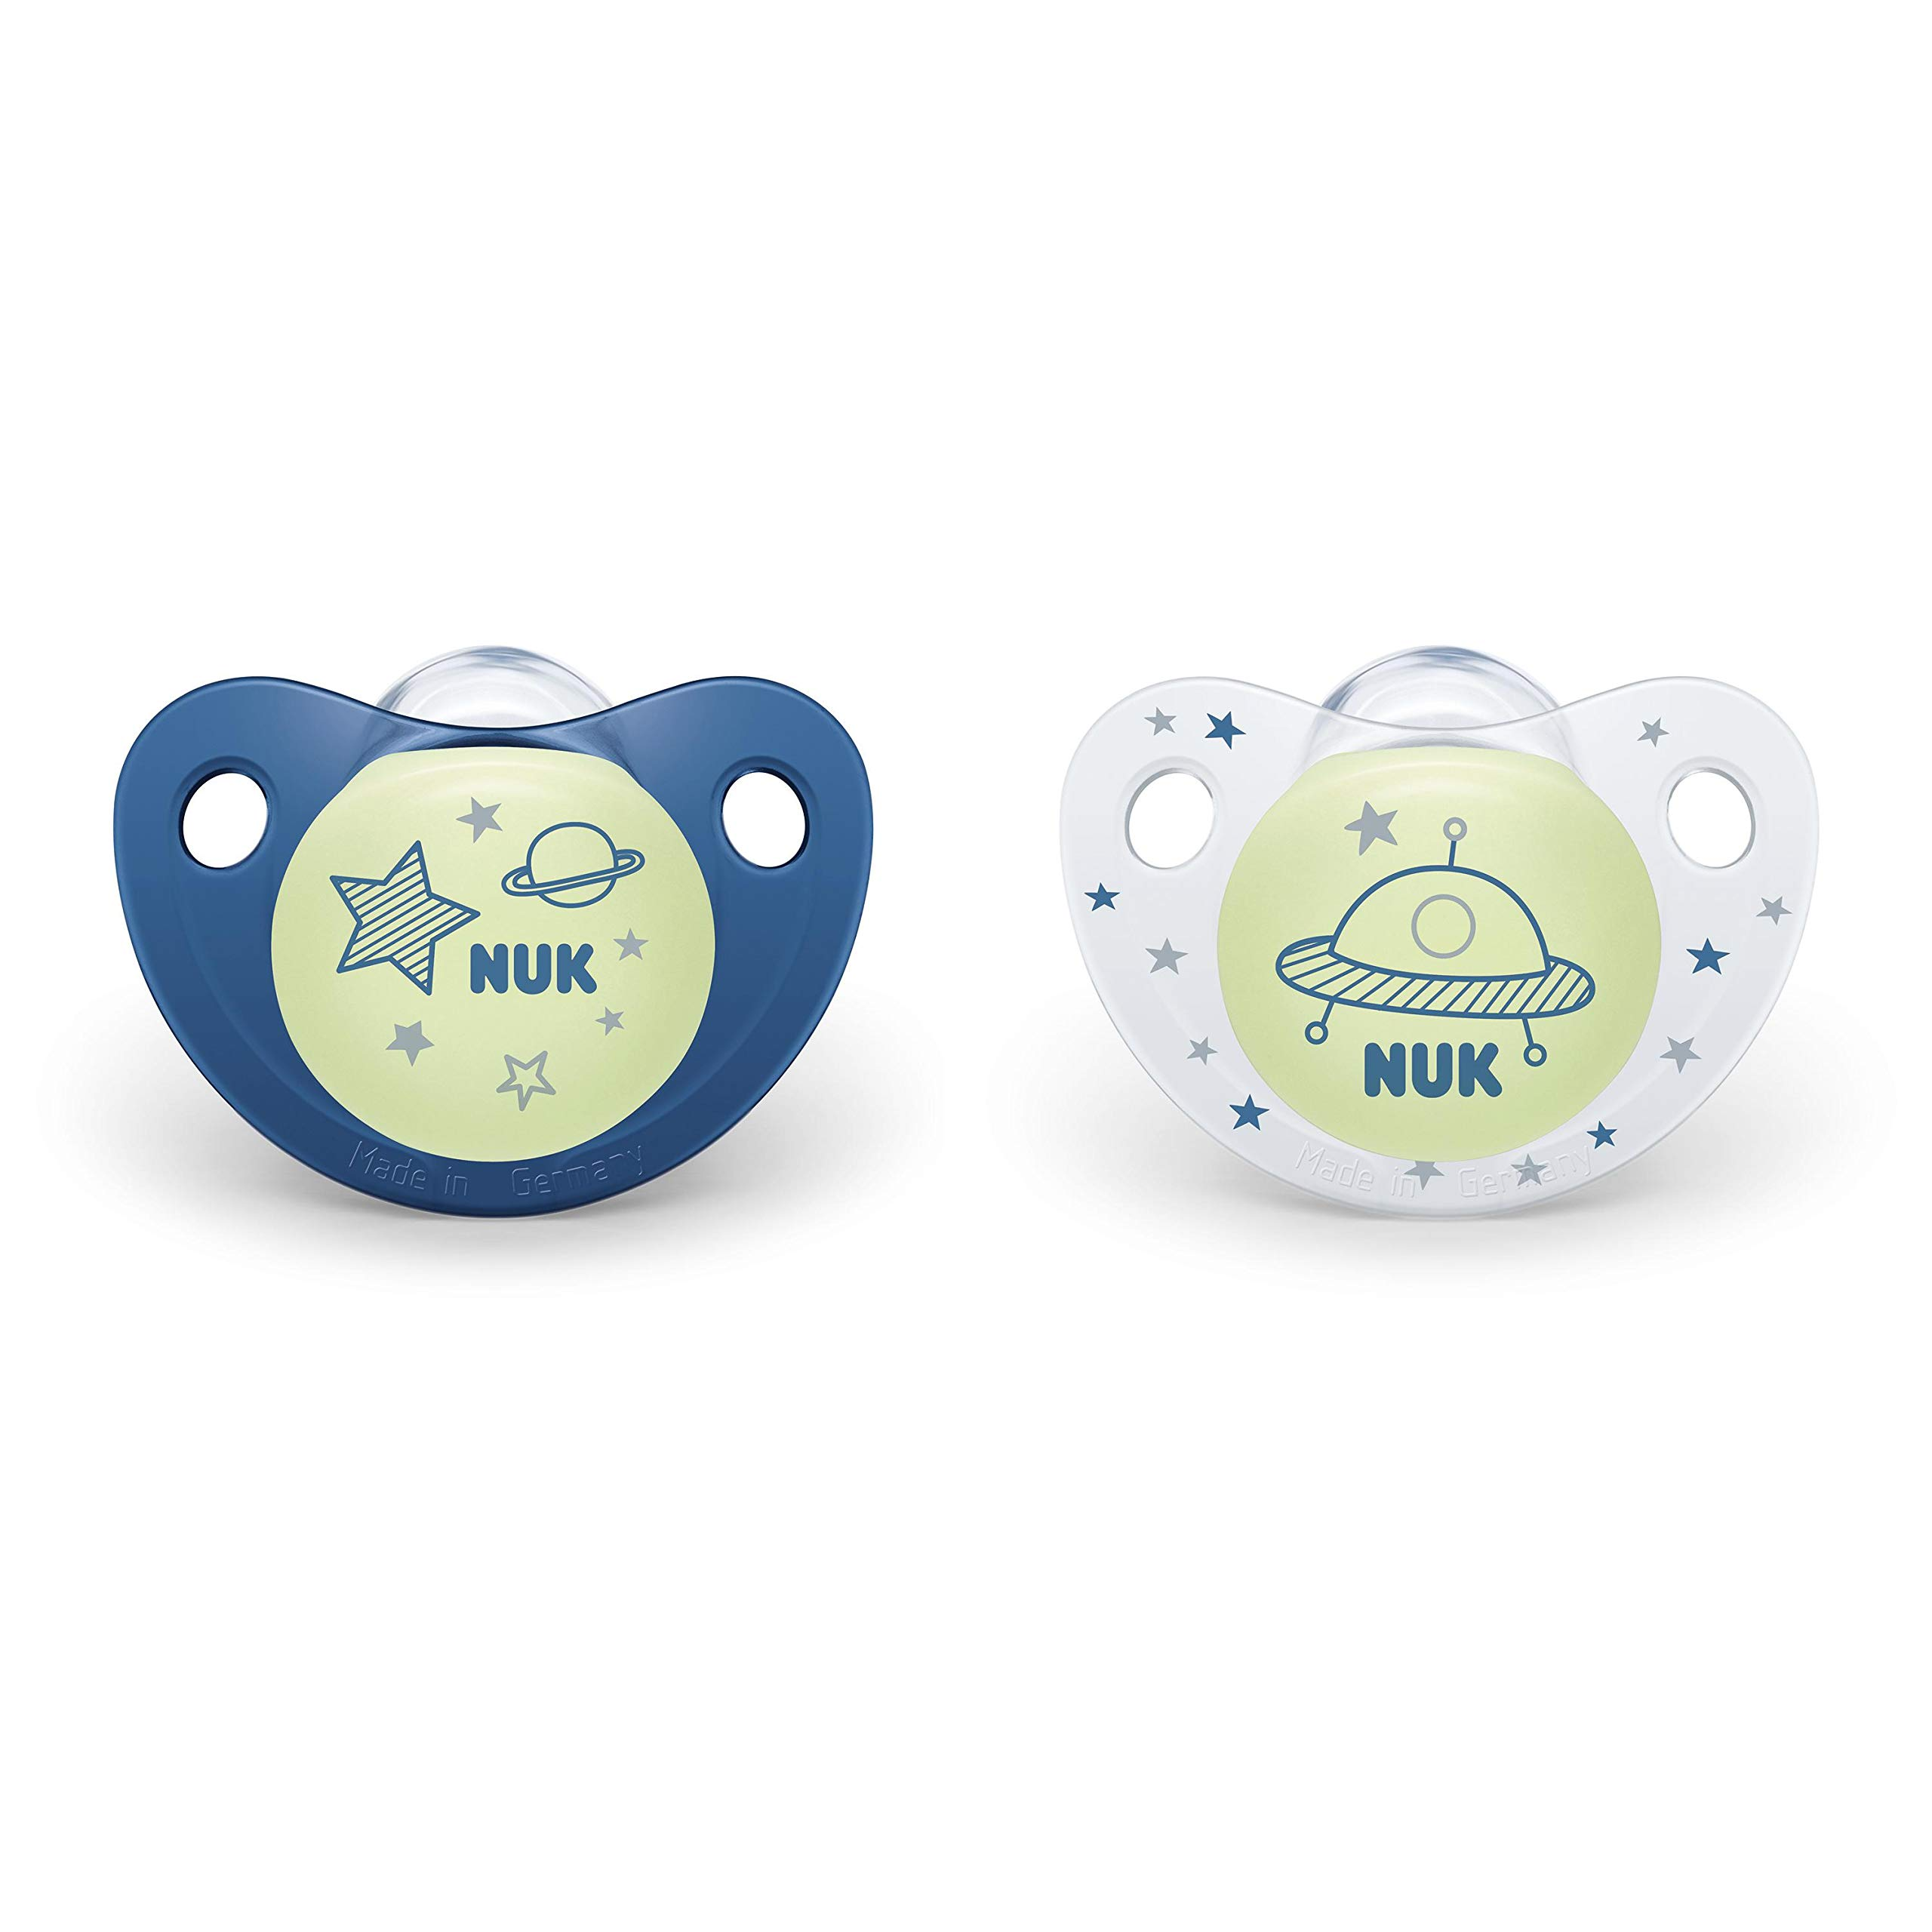 Amazon.com : NUK Glow-in-The-Dark Orthodontic Pacifiers, Boy ...